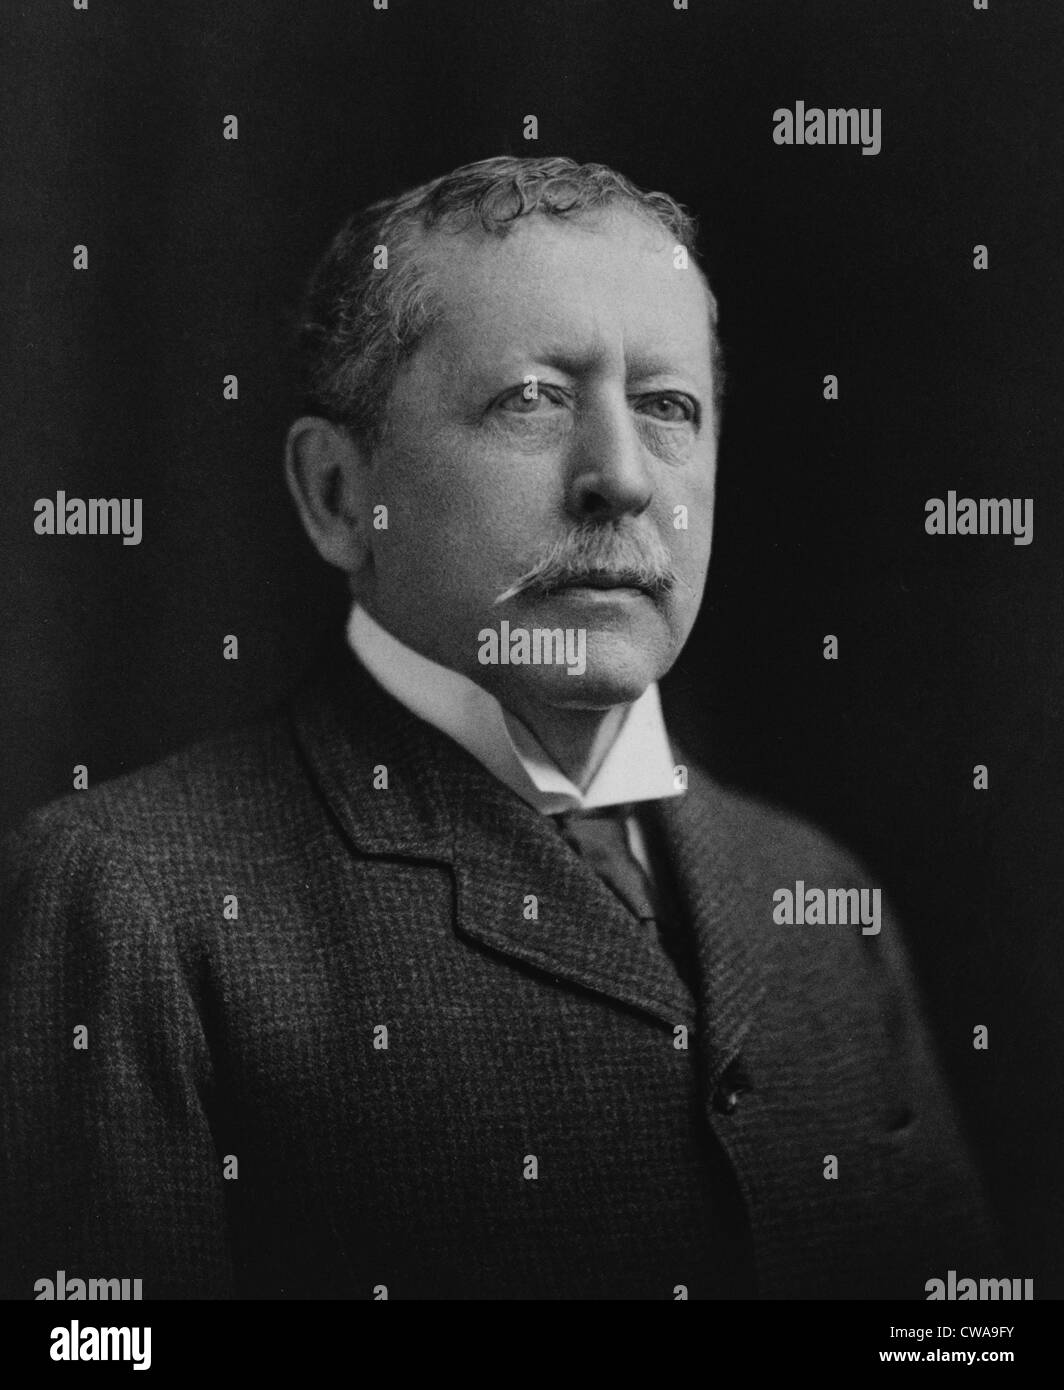 Thomas Bailey Aldrich (1836-1907), poet and short story author in an 1896 portrait. - Stock Image